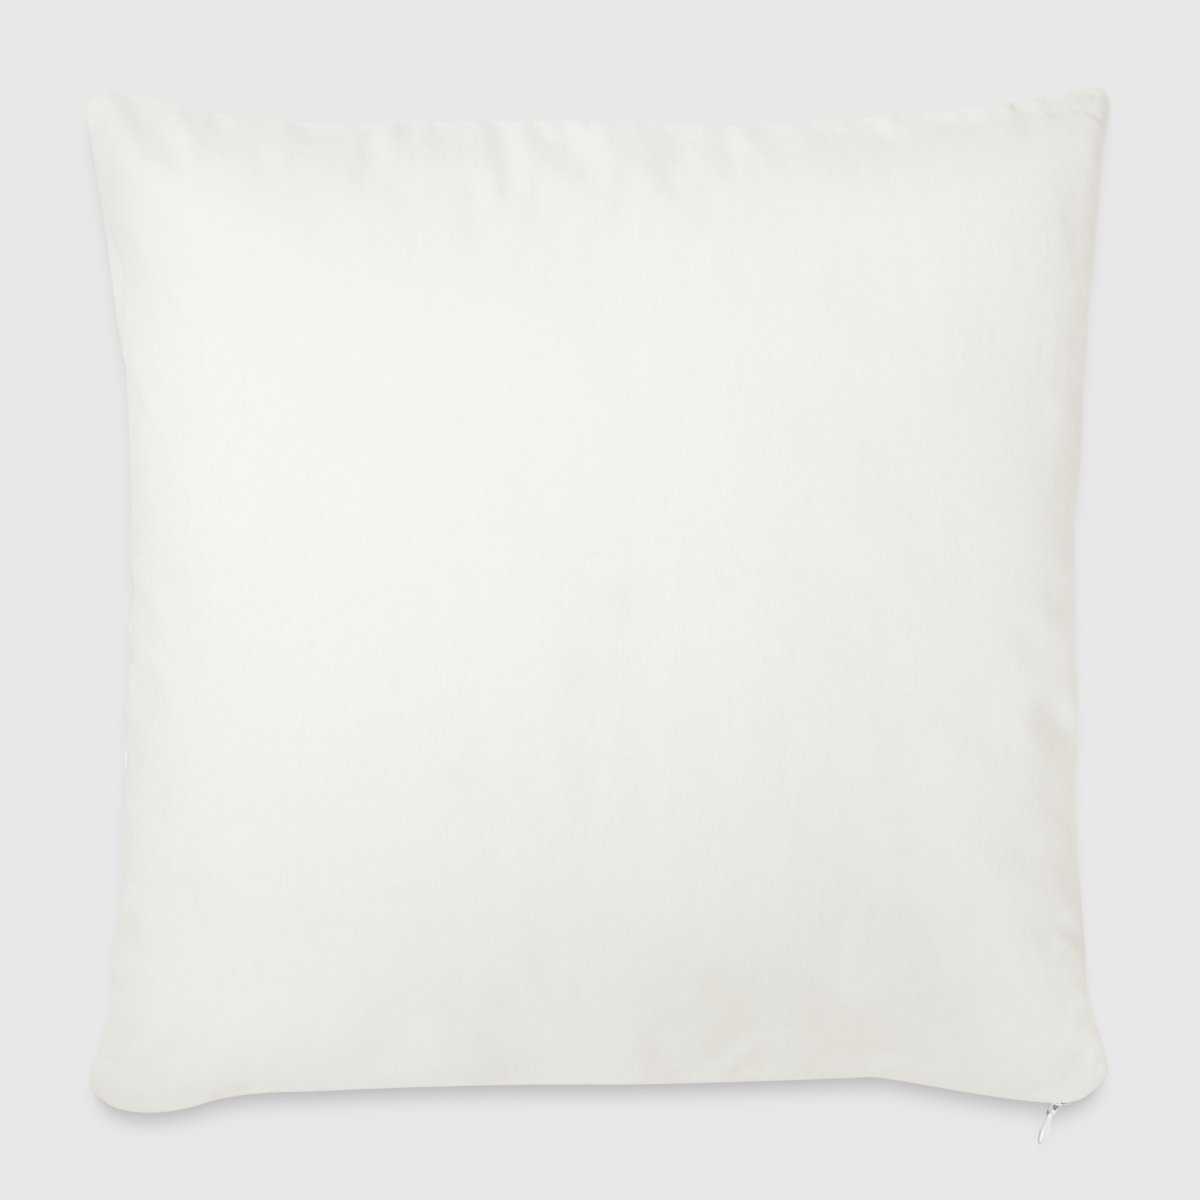 Sofa pillow with filling 45cm x 45cm - Front